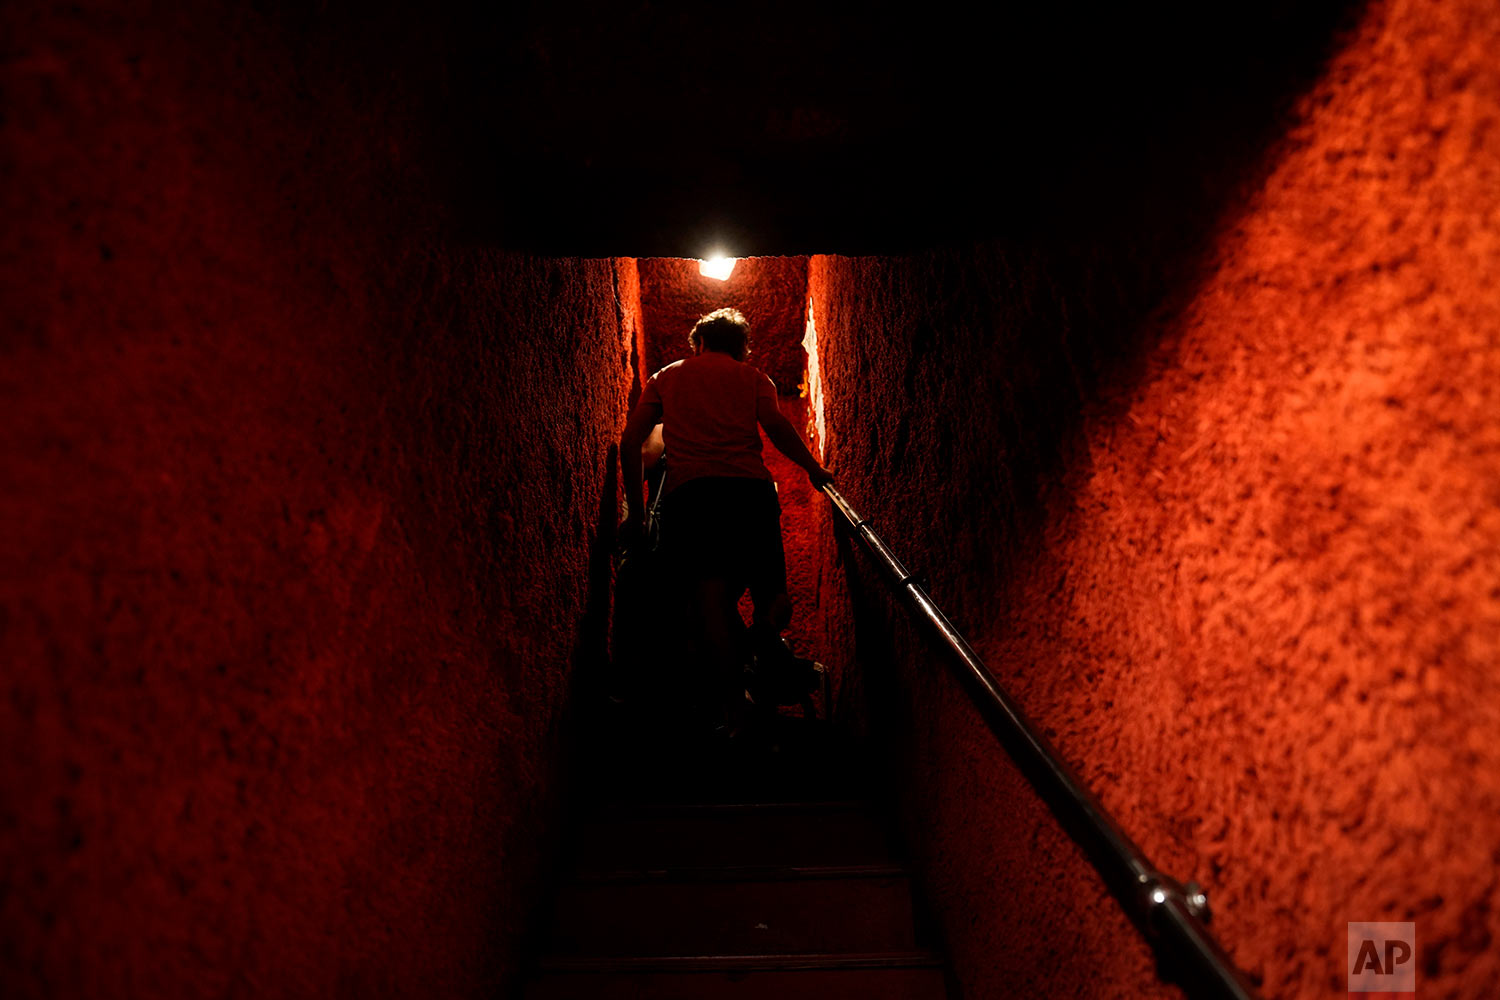 A man walks up a narrow staircase leading to a bar at the Golden Gai in the Shinjuku district of Tokyo, July 26, 2019. (AP Photo/Jae C. Hong)